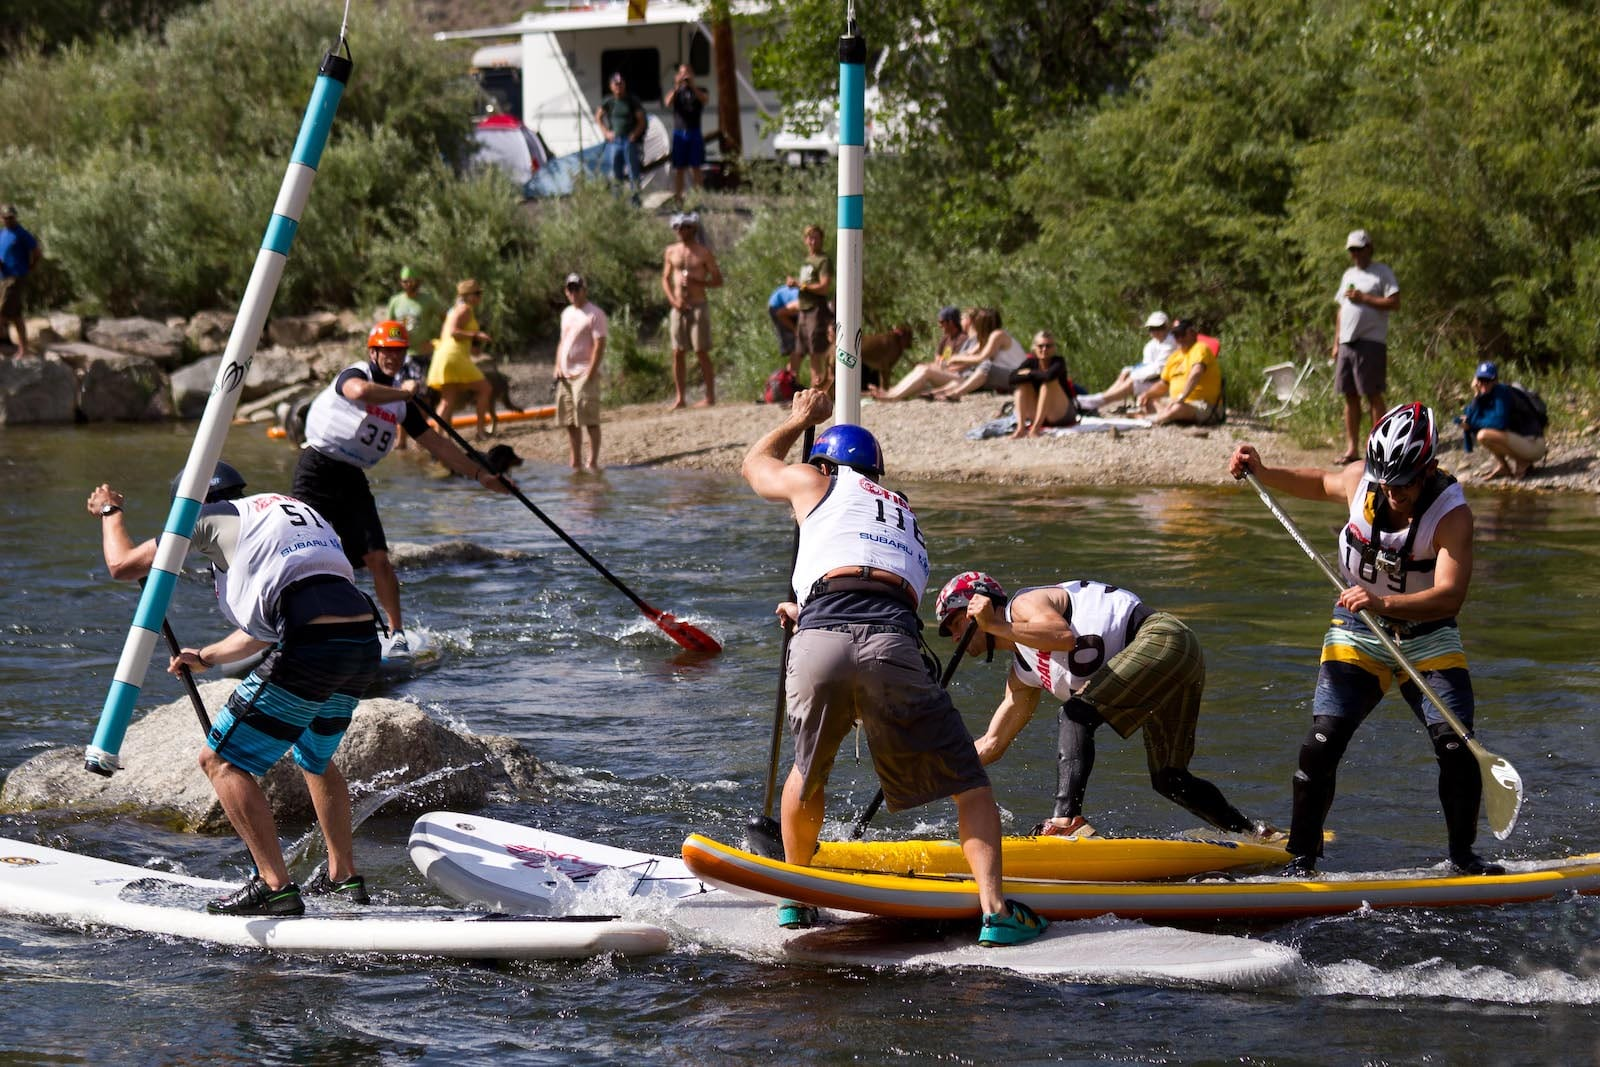 Mayhem in SUP Cross at the FIBArk Whitewater Festival.